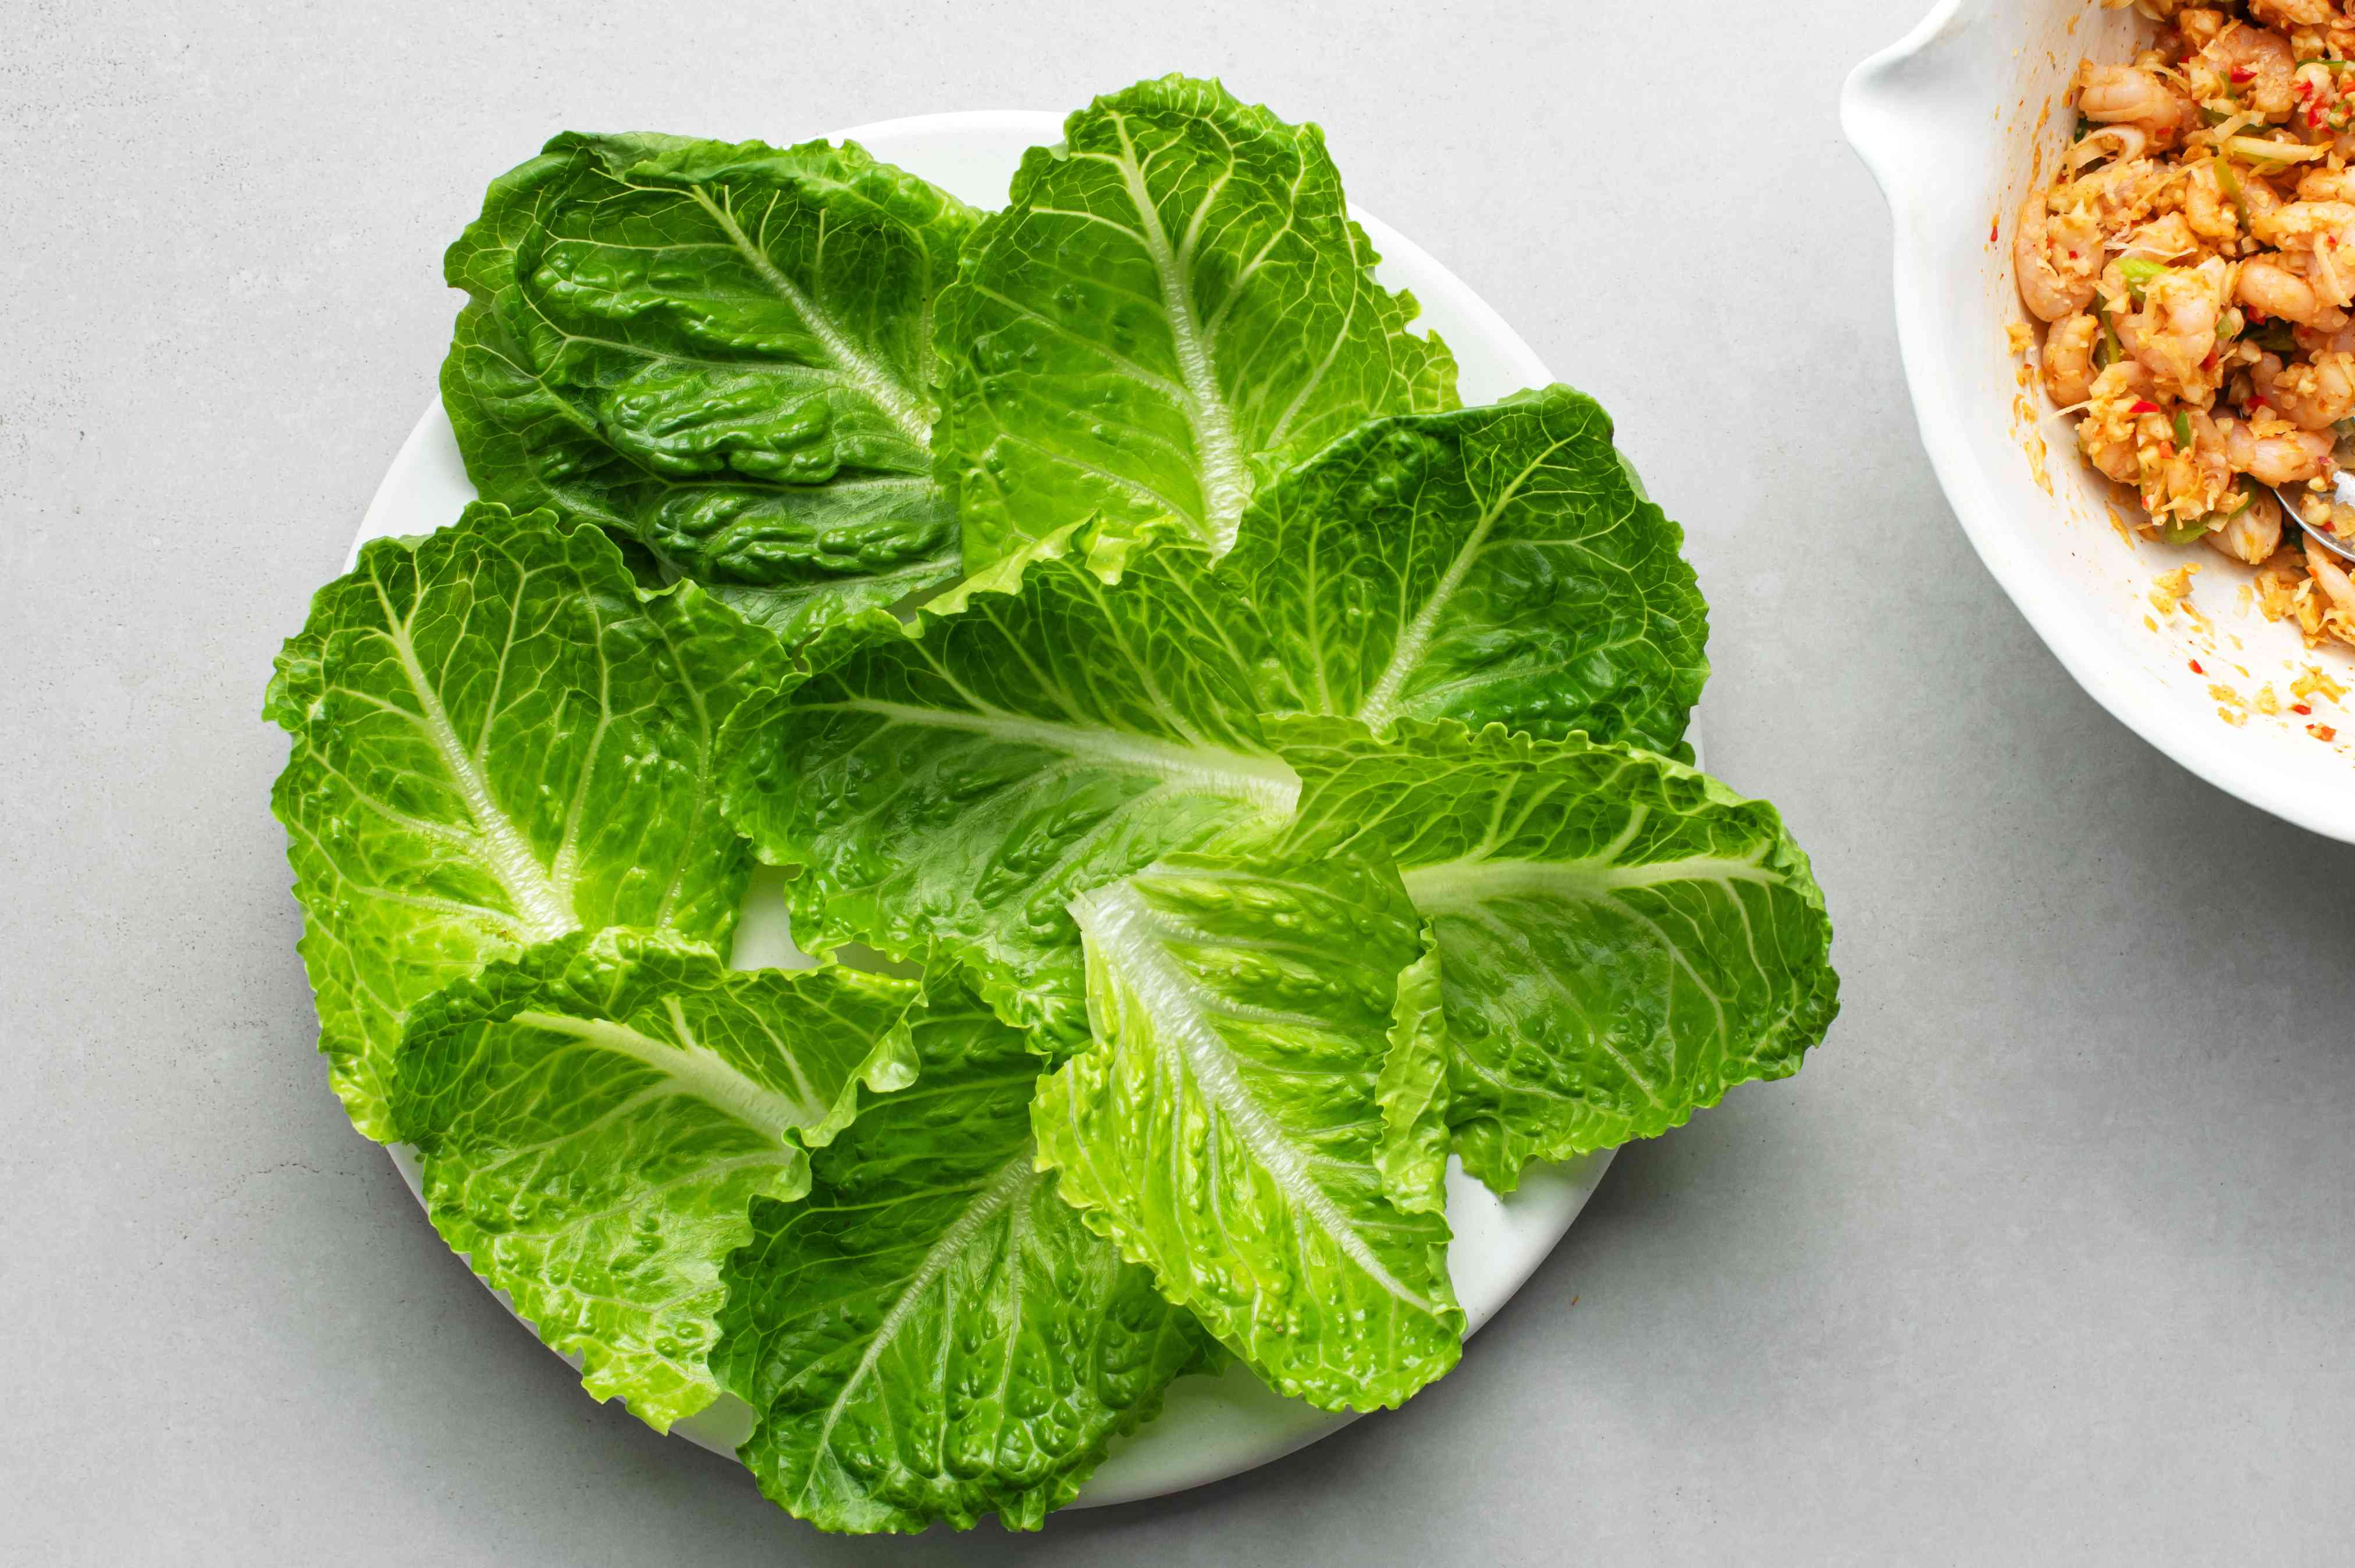 romaine lettuce leaves on a plate